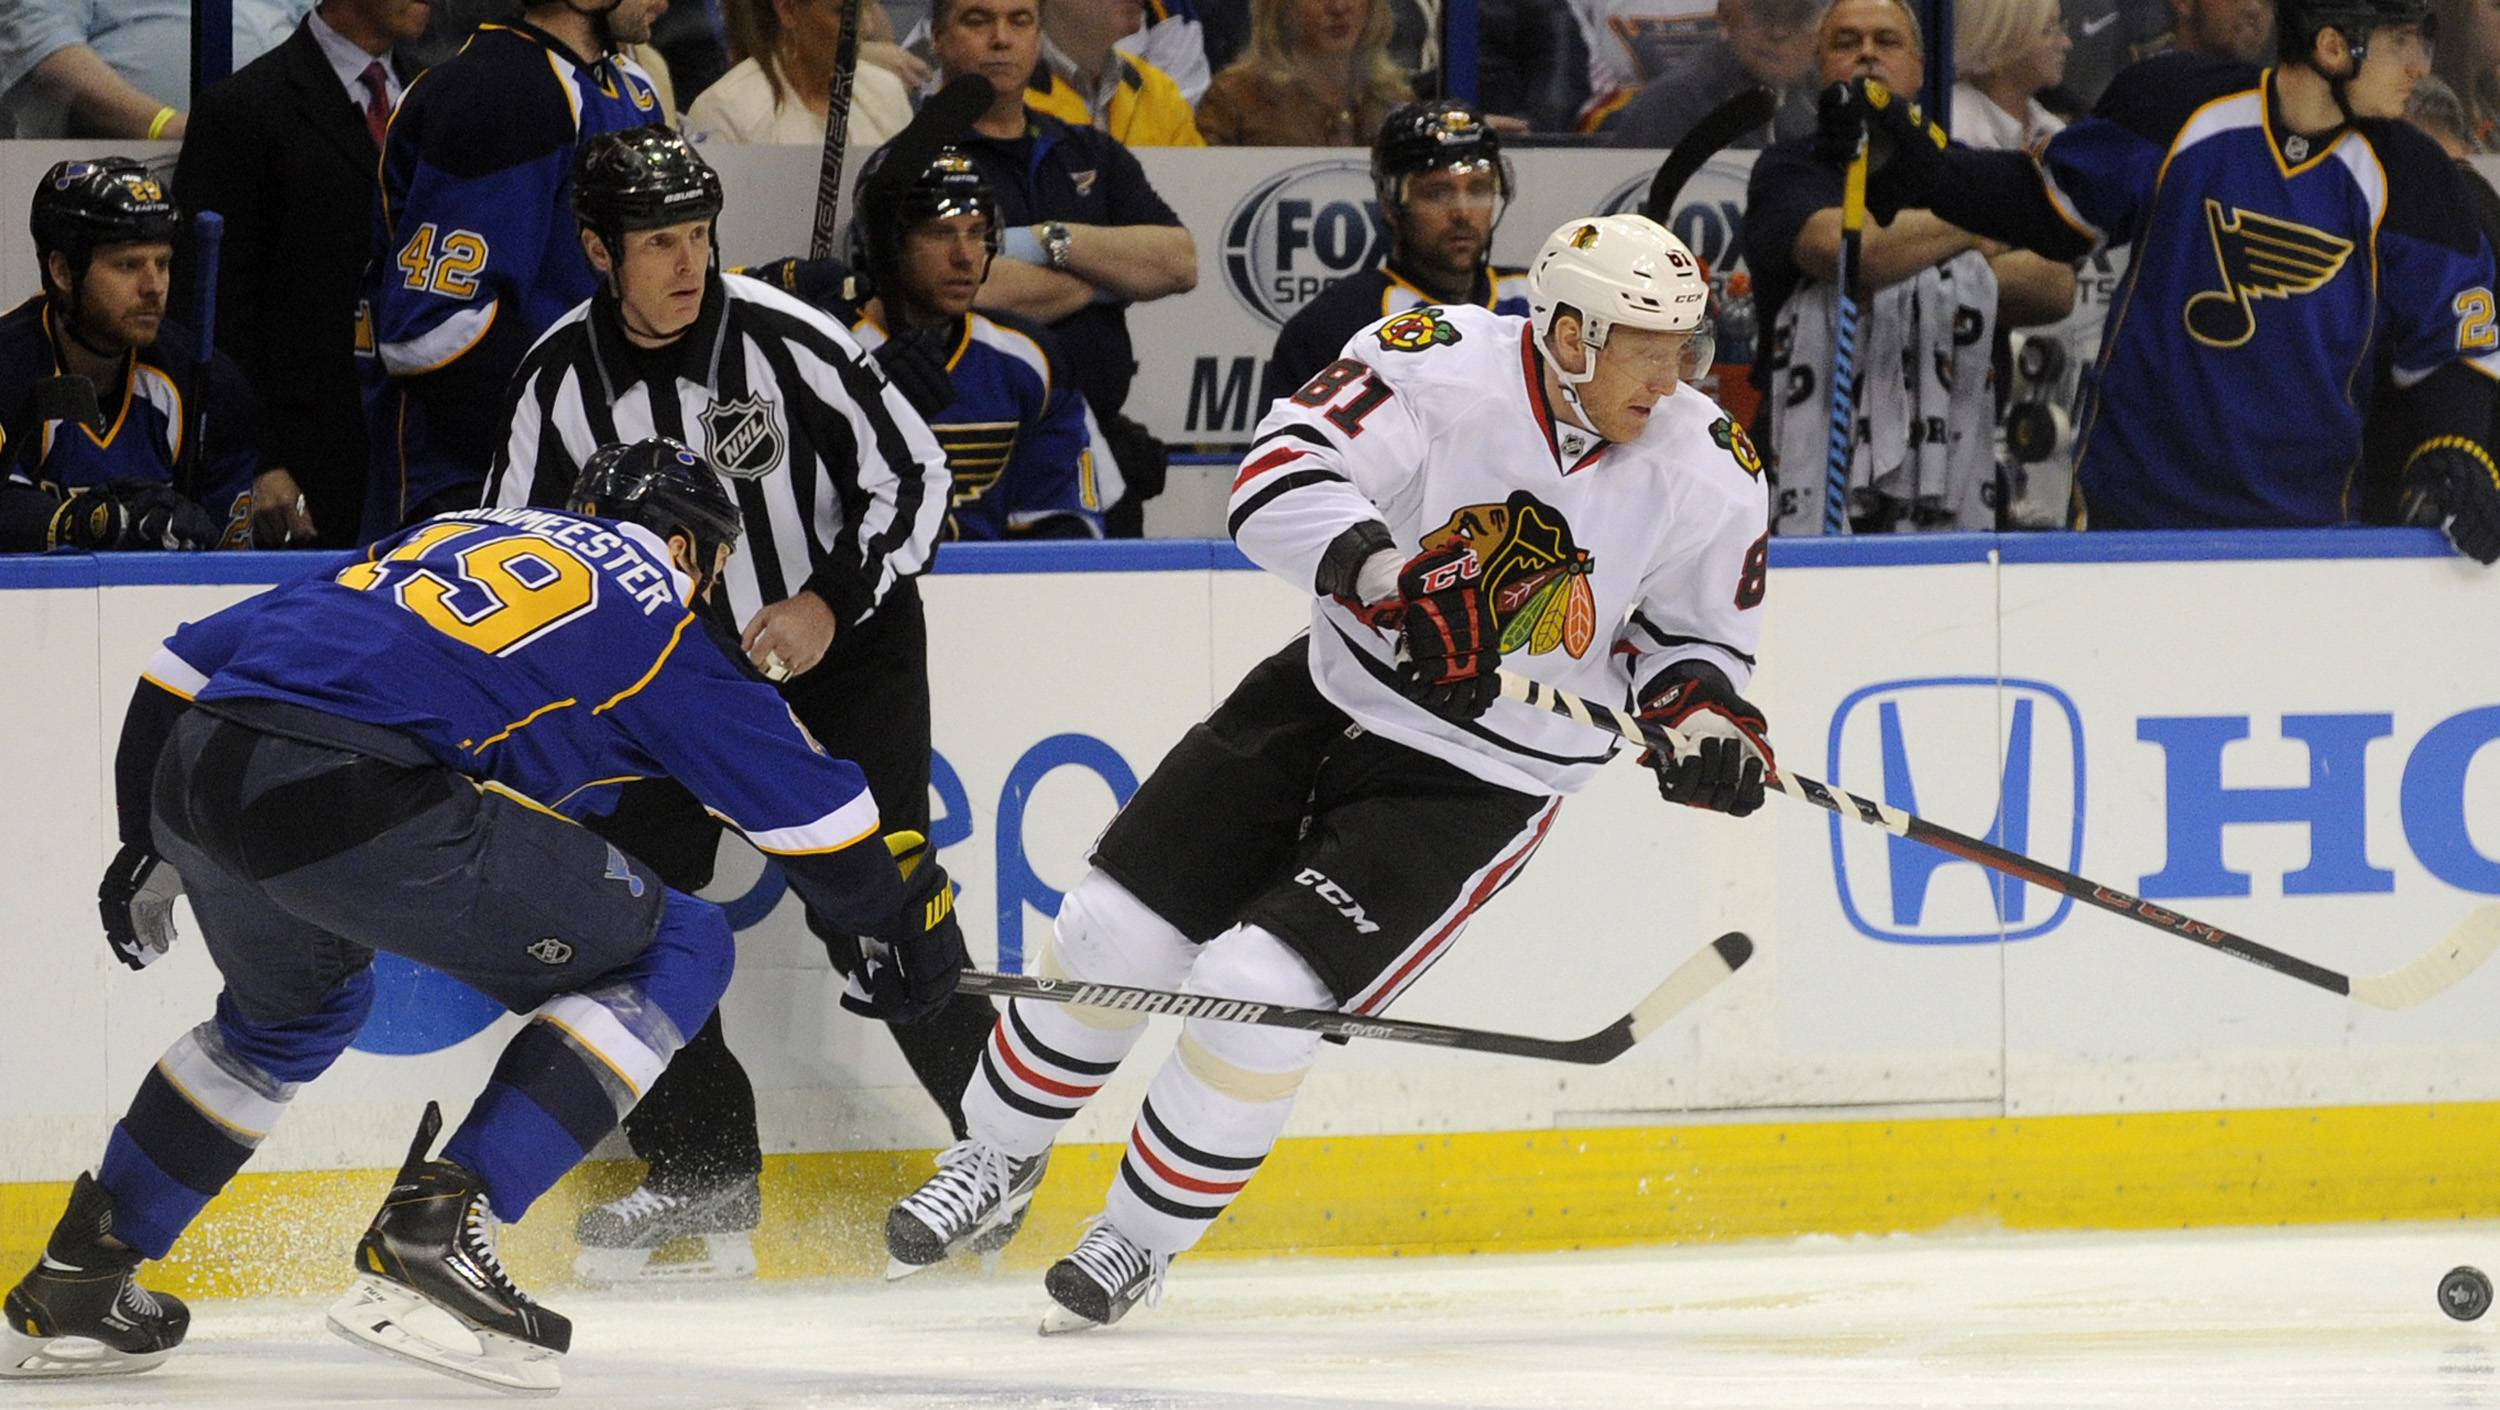 Chicago Blackhawks' Marian Hossa (81), of Sweden, and St. Louis Blues' Jay Bouwmeester (19) reach for a loose puck during the first period in Game 2 of a first-round NHL hockey playoff series on Saturday, April 19, 2014, in St. Louis.